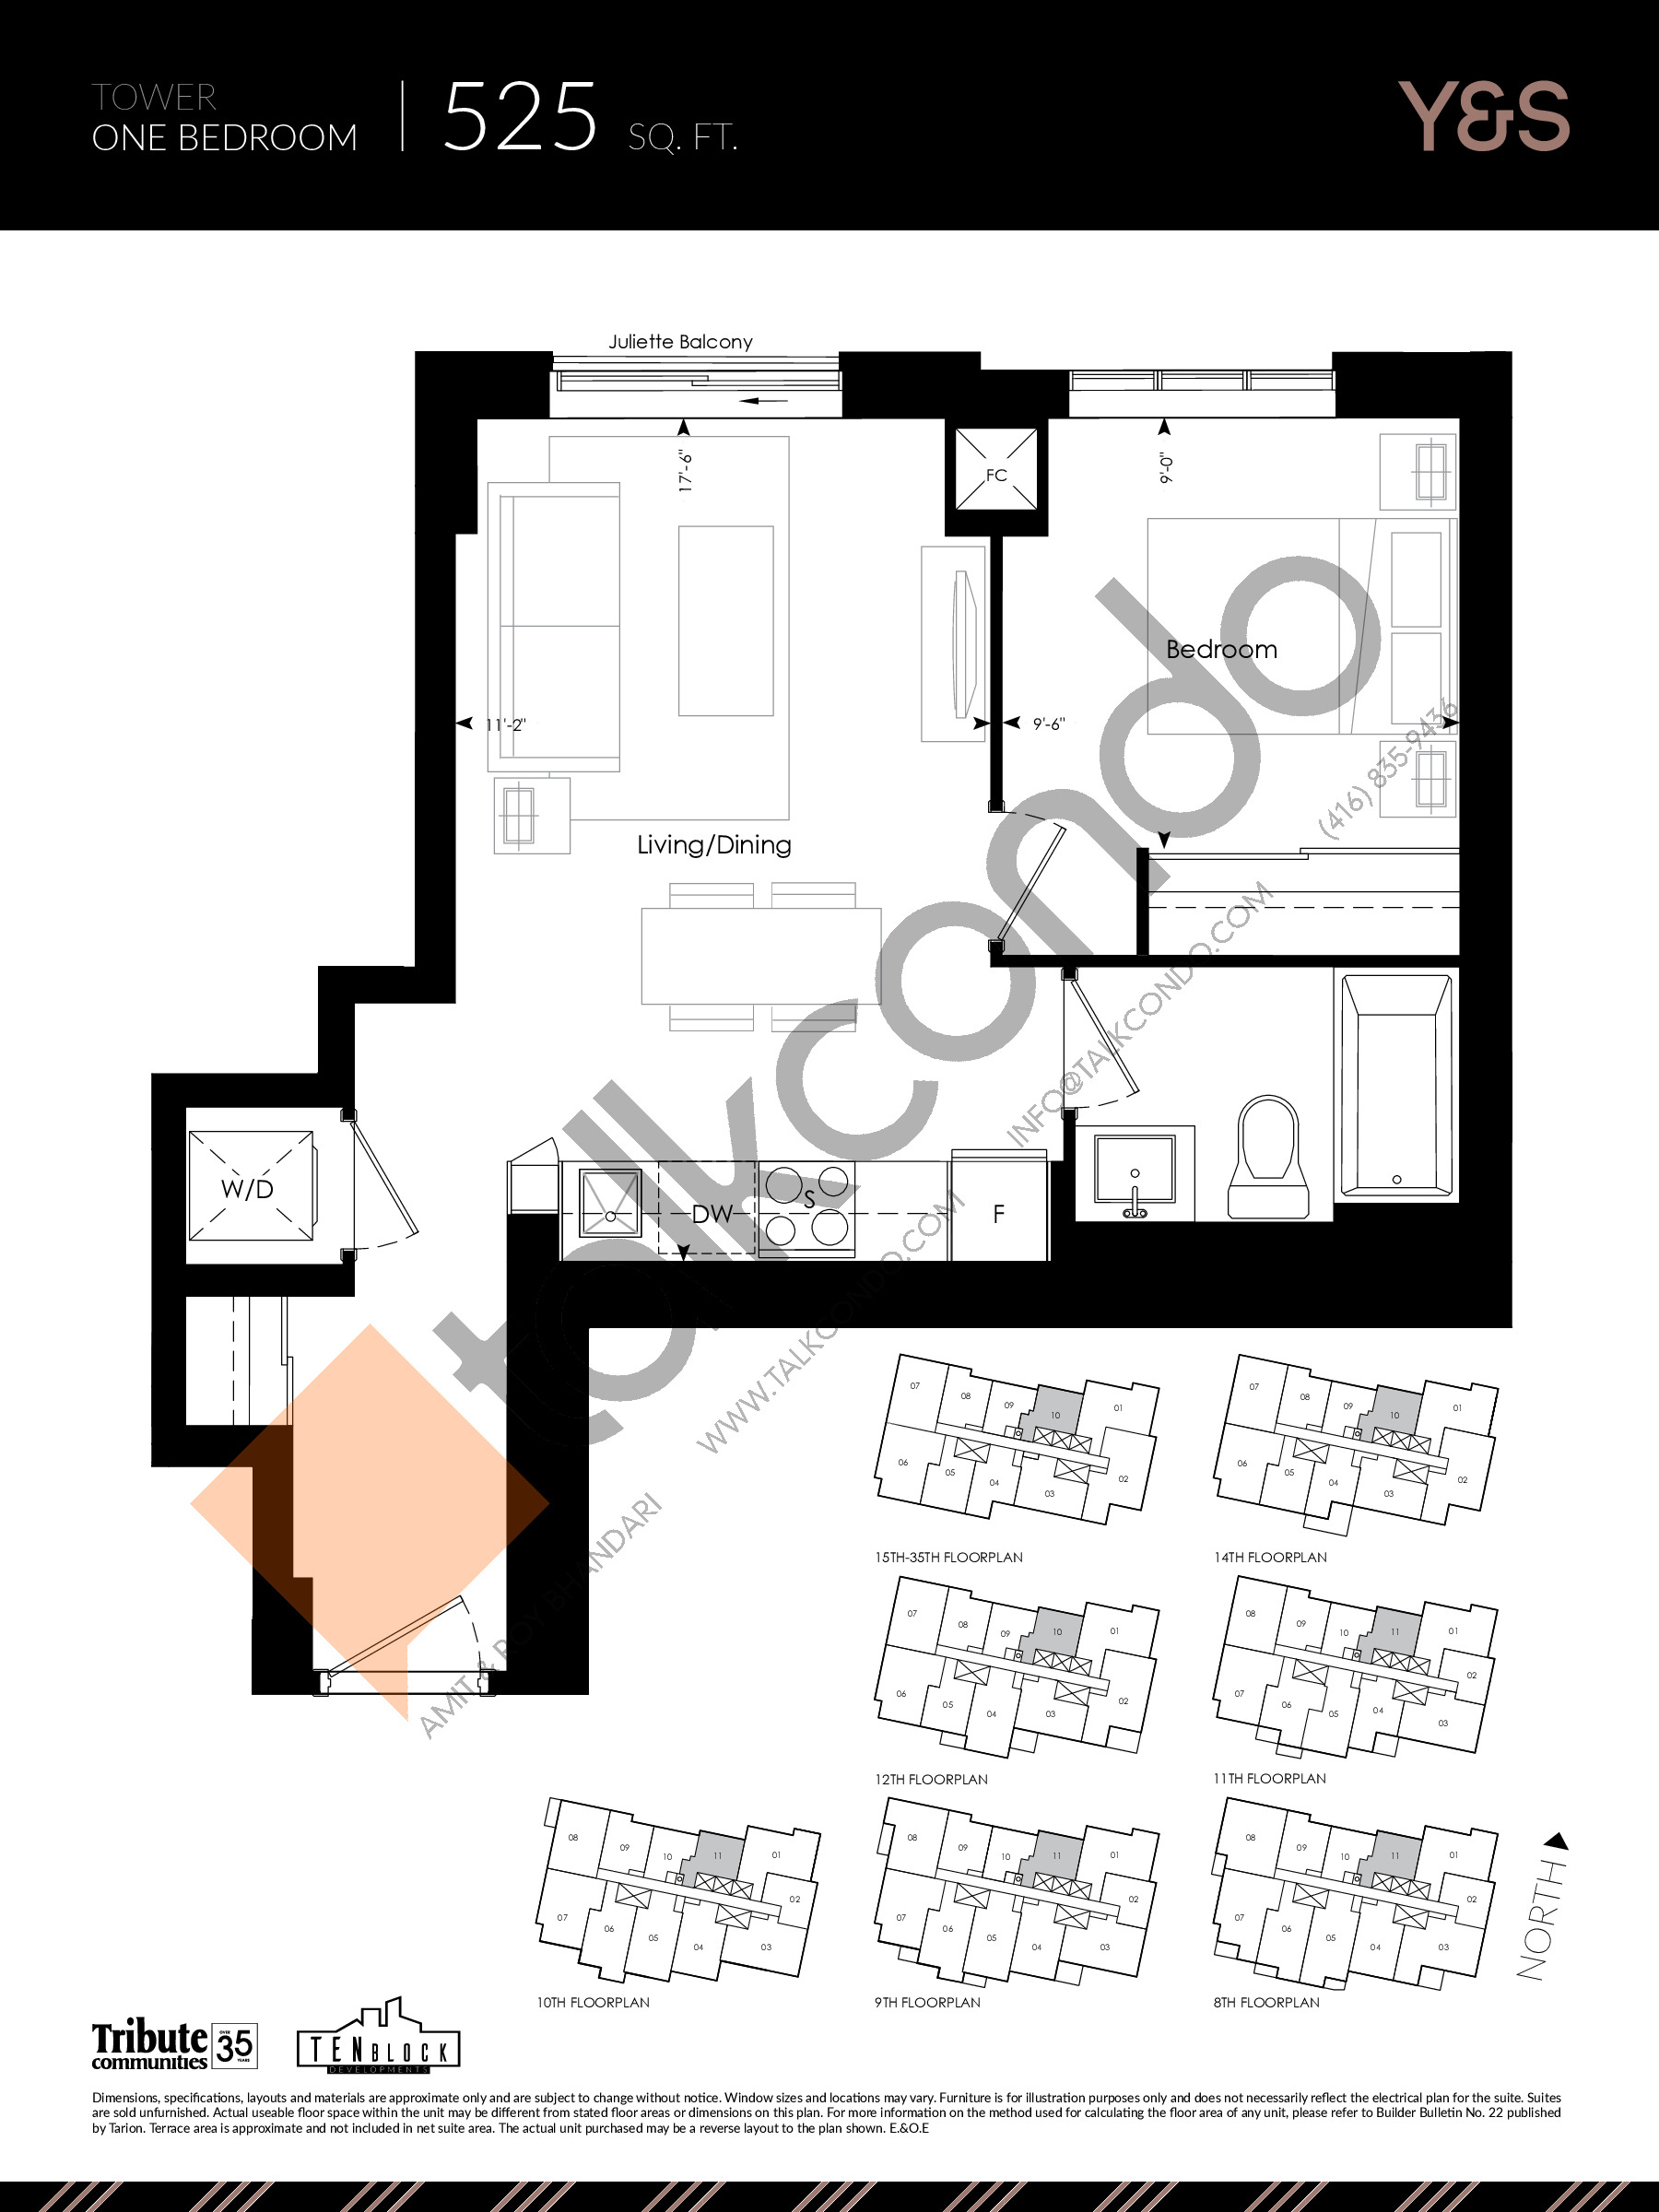 525 sq. ft. Floor Plan at Y&S Condos - 525 sq.ft